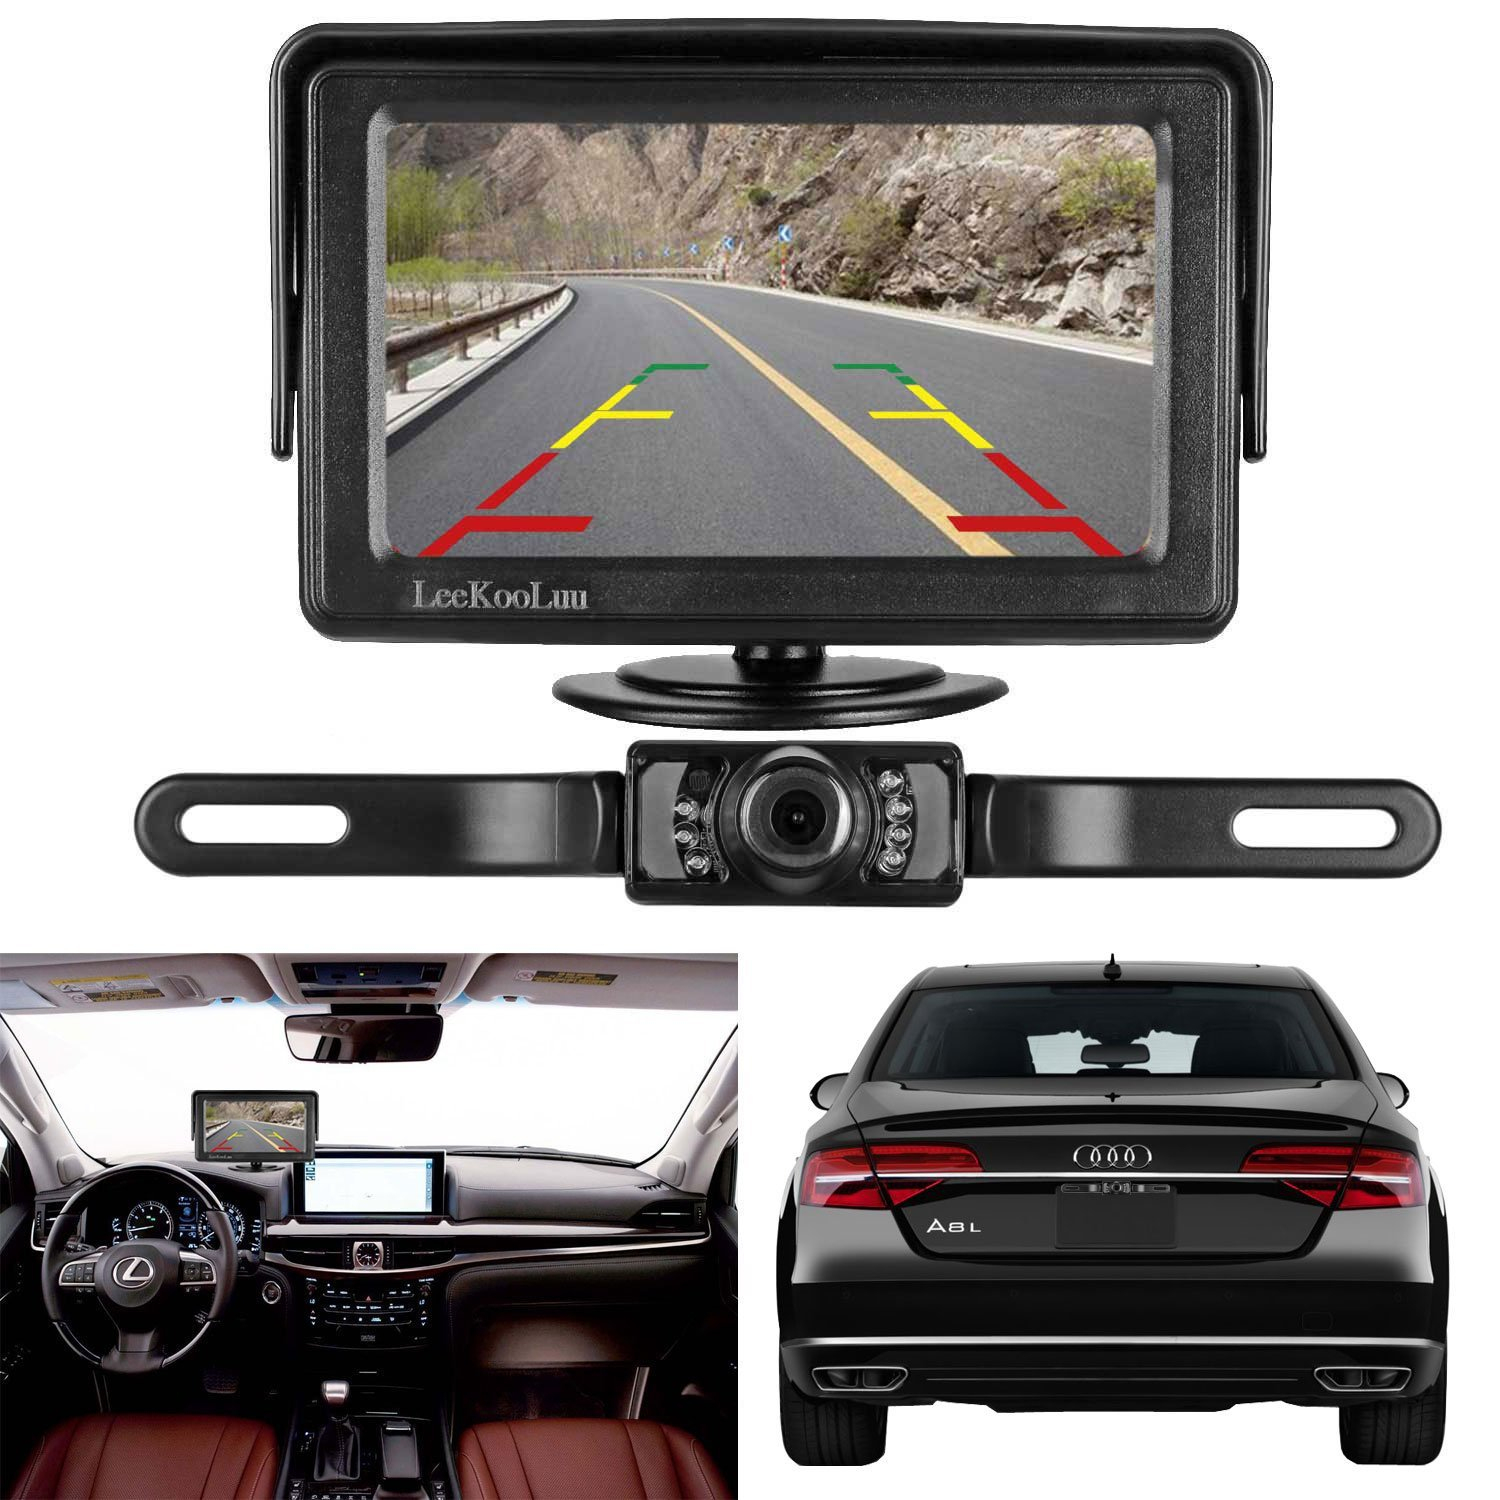 The 10 Best Backup Cameras To Buy 2019 - Auto Quarterly - Leekooluu Backup Camera Wiring Diagram